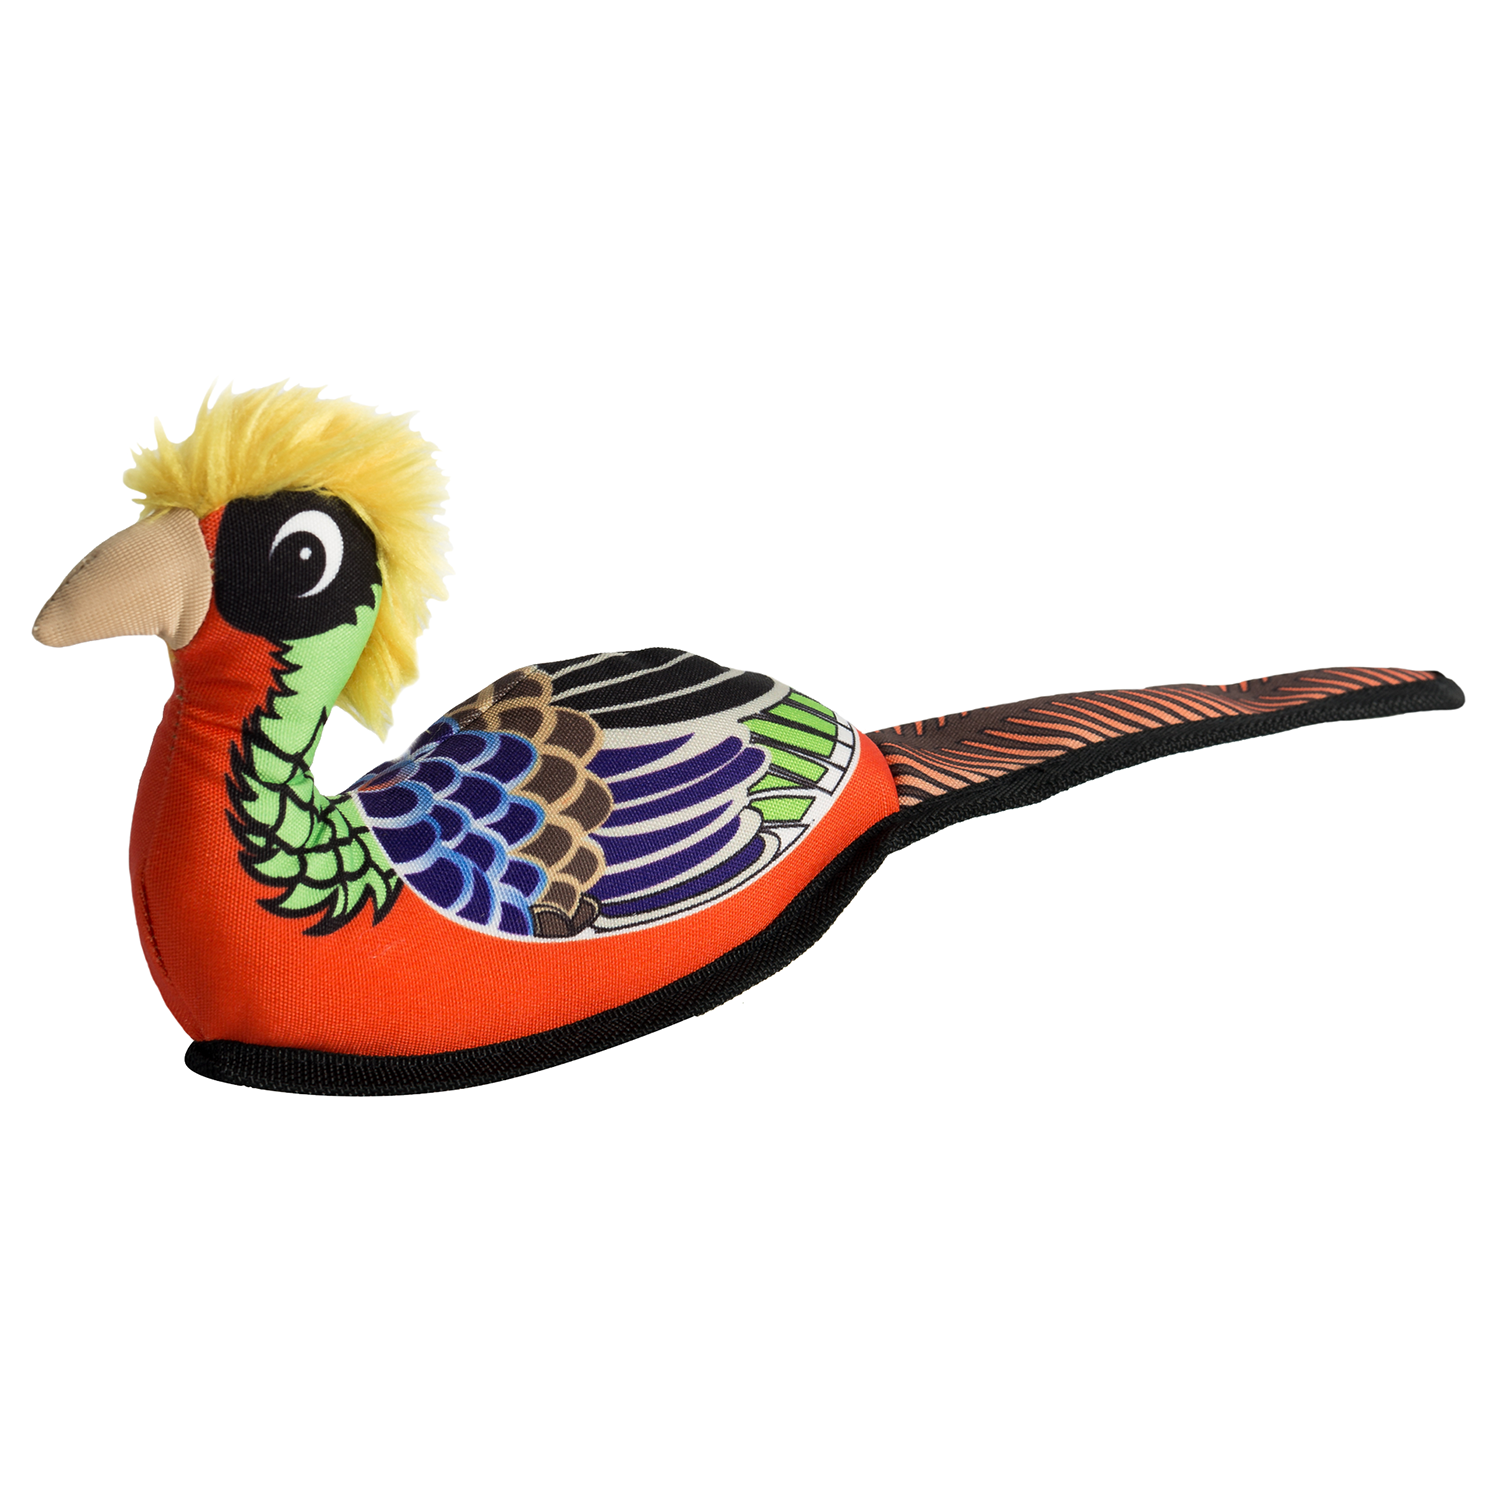 Happy Tails Critterz Canvas Dog Toy - Pheasant